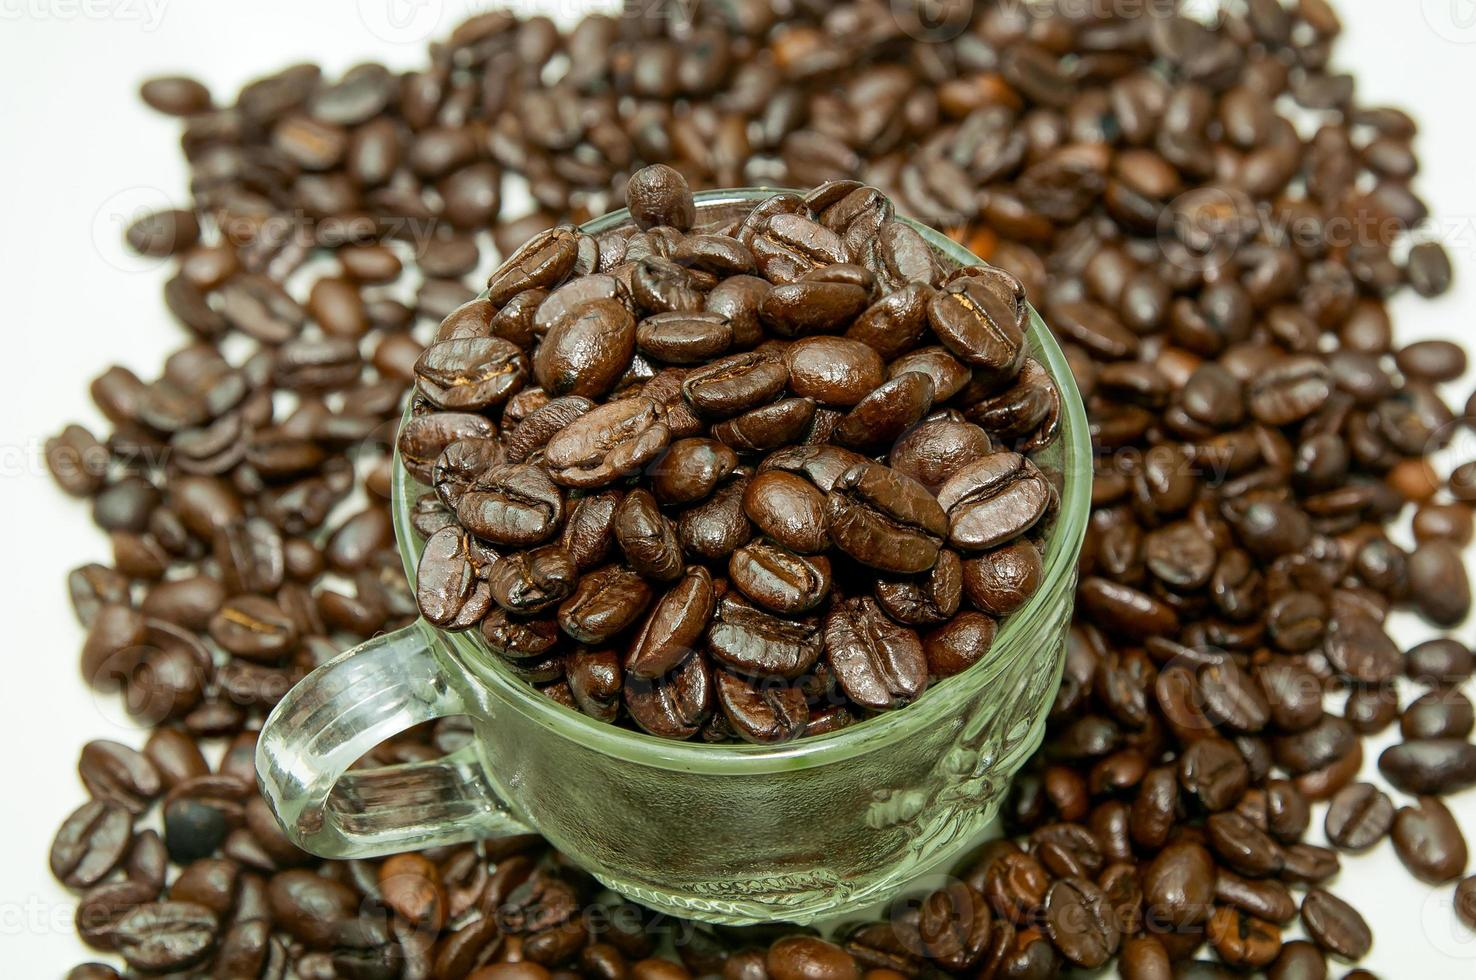 Coffee beans in a glass cup photo